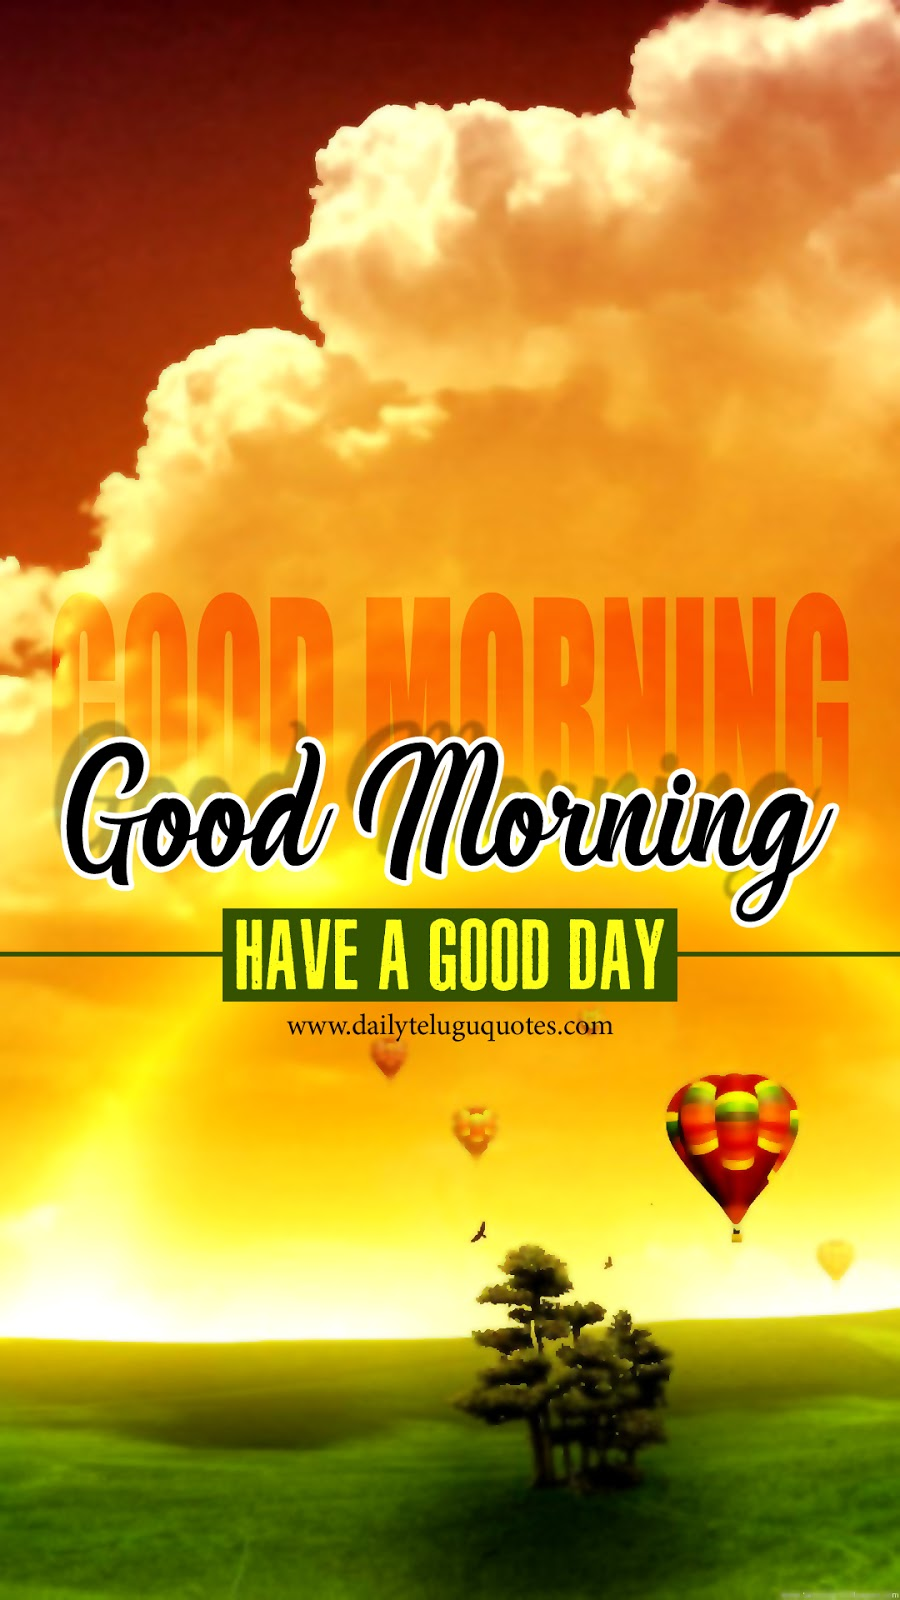 Download Hd Wallpapers Of Good Morning Wishes Quotes